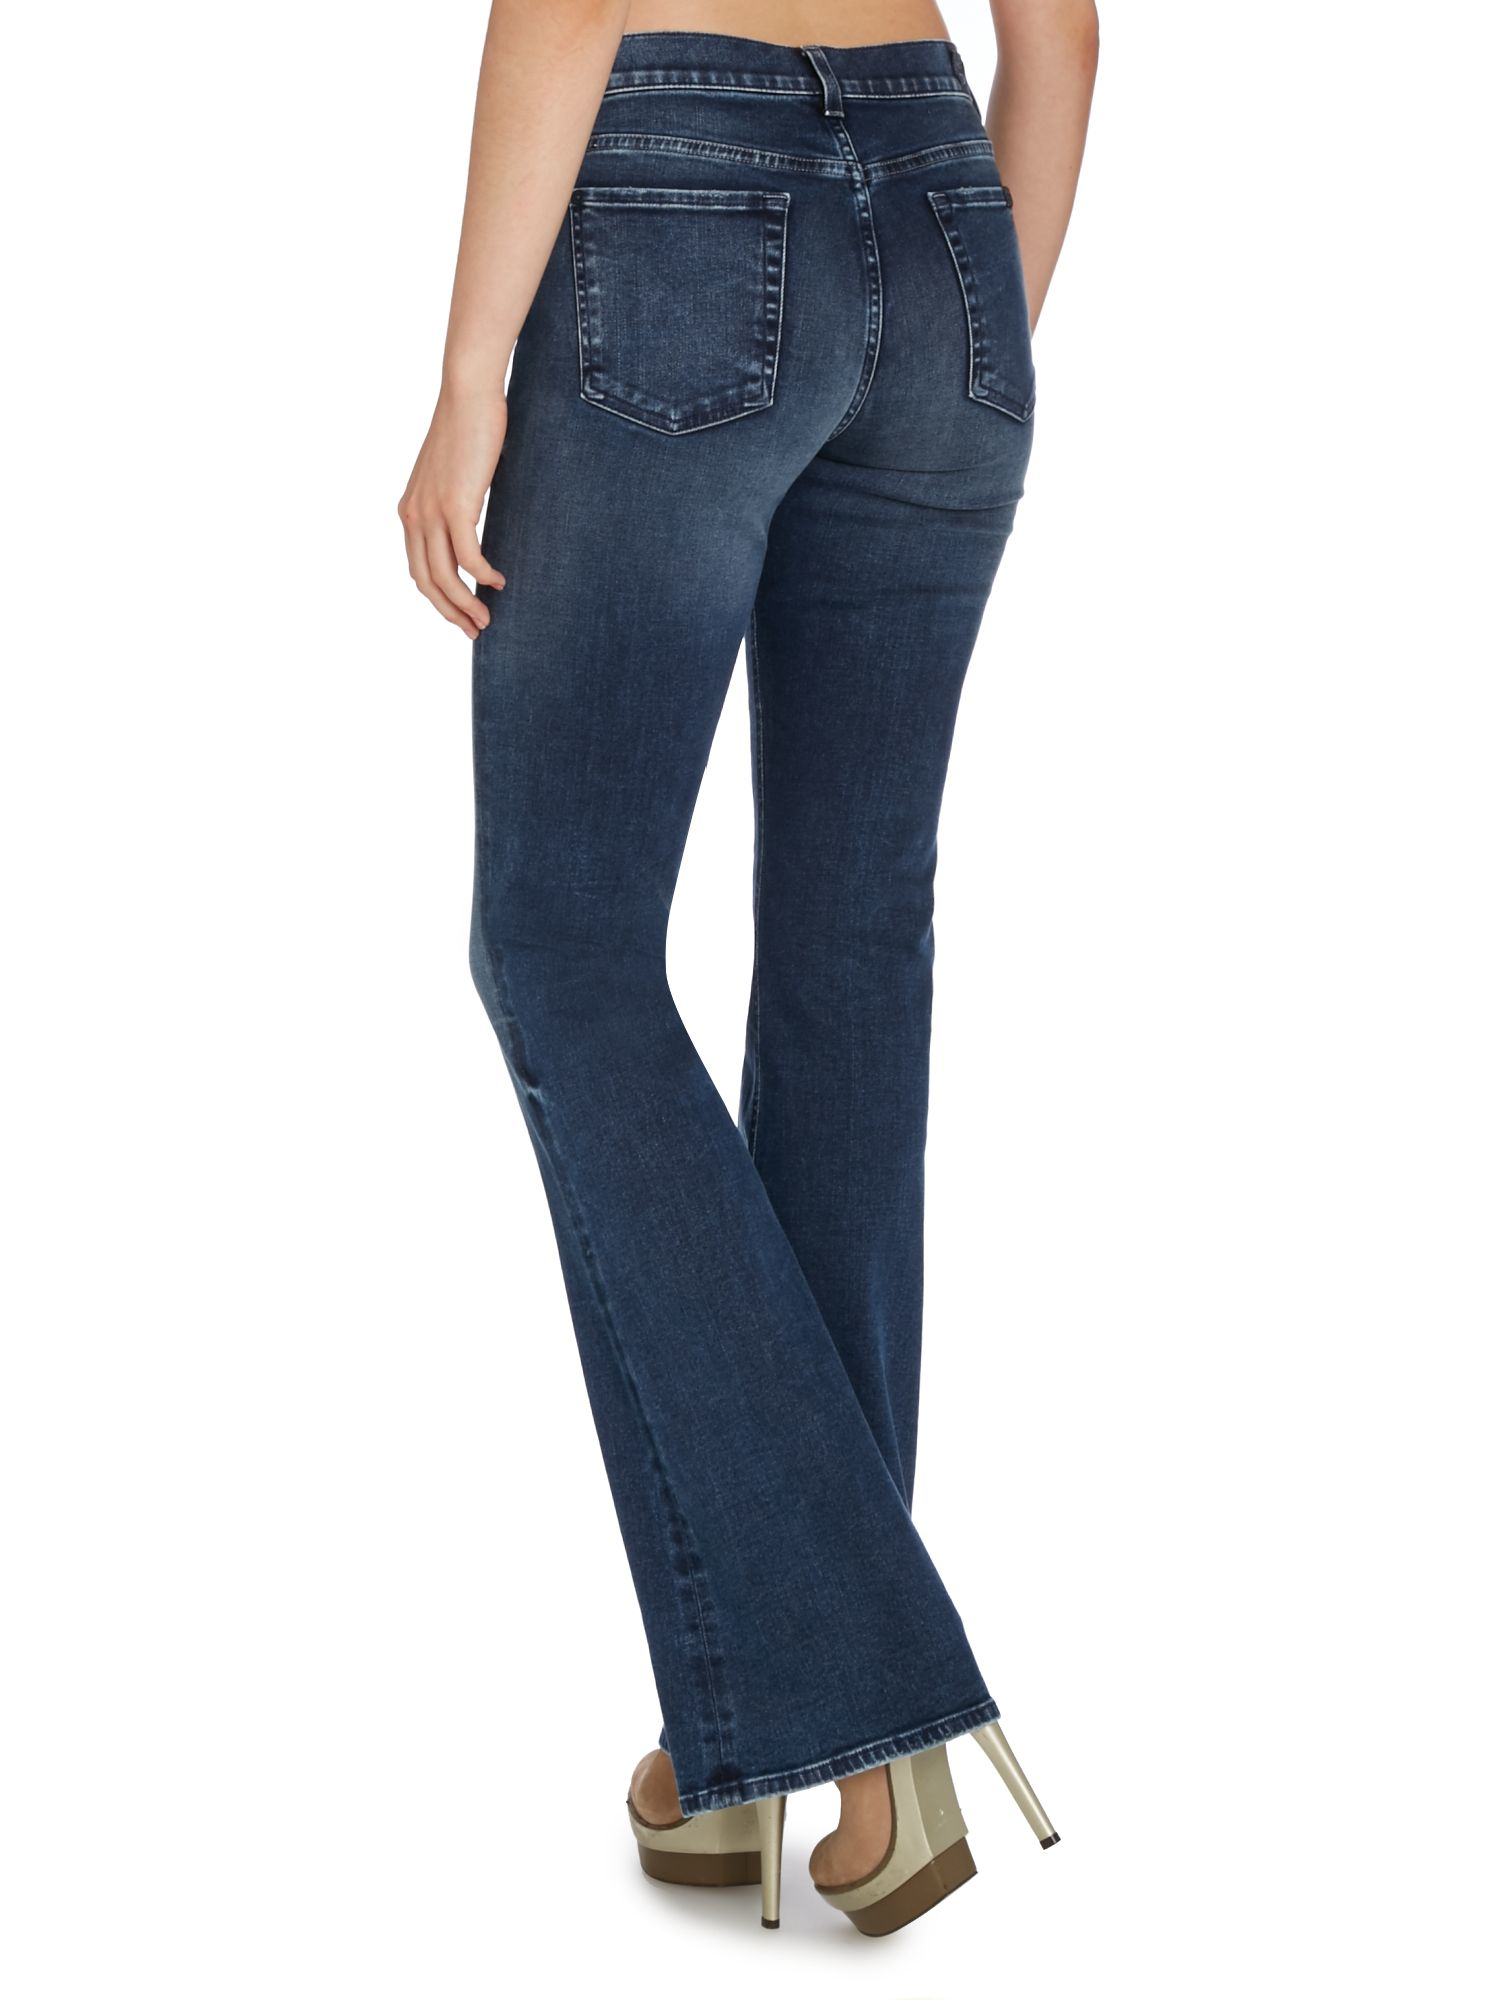 bootcut jeans - Blue 7 For All Mankind Uqs3MPa